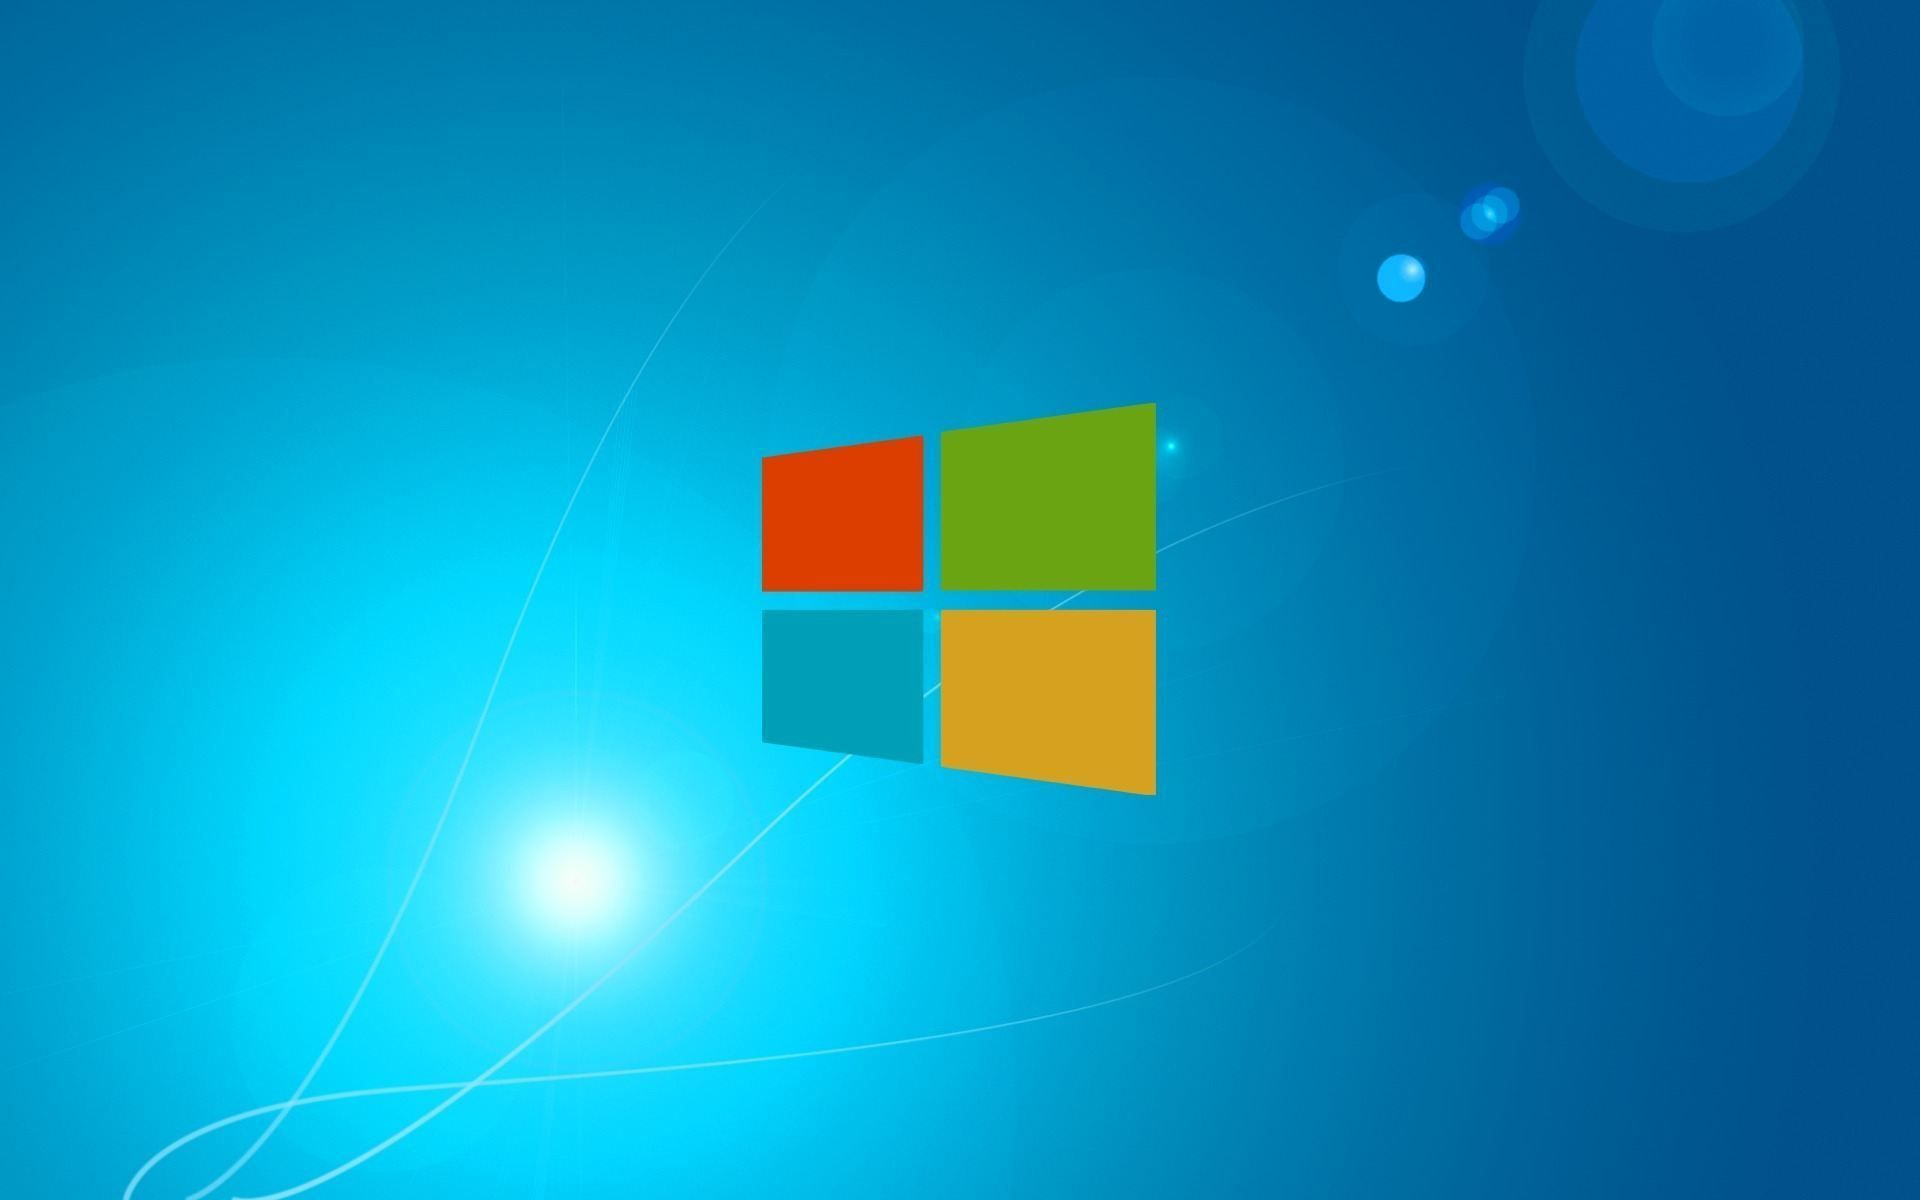 Windows 10 Microsoft Windows Cyan Window Cyan Background 1080p Wallpaper Hdwallpaper Desktop In 2020 Minimalist Window Windows 10 Windows